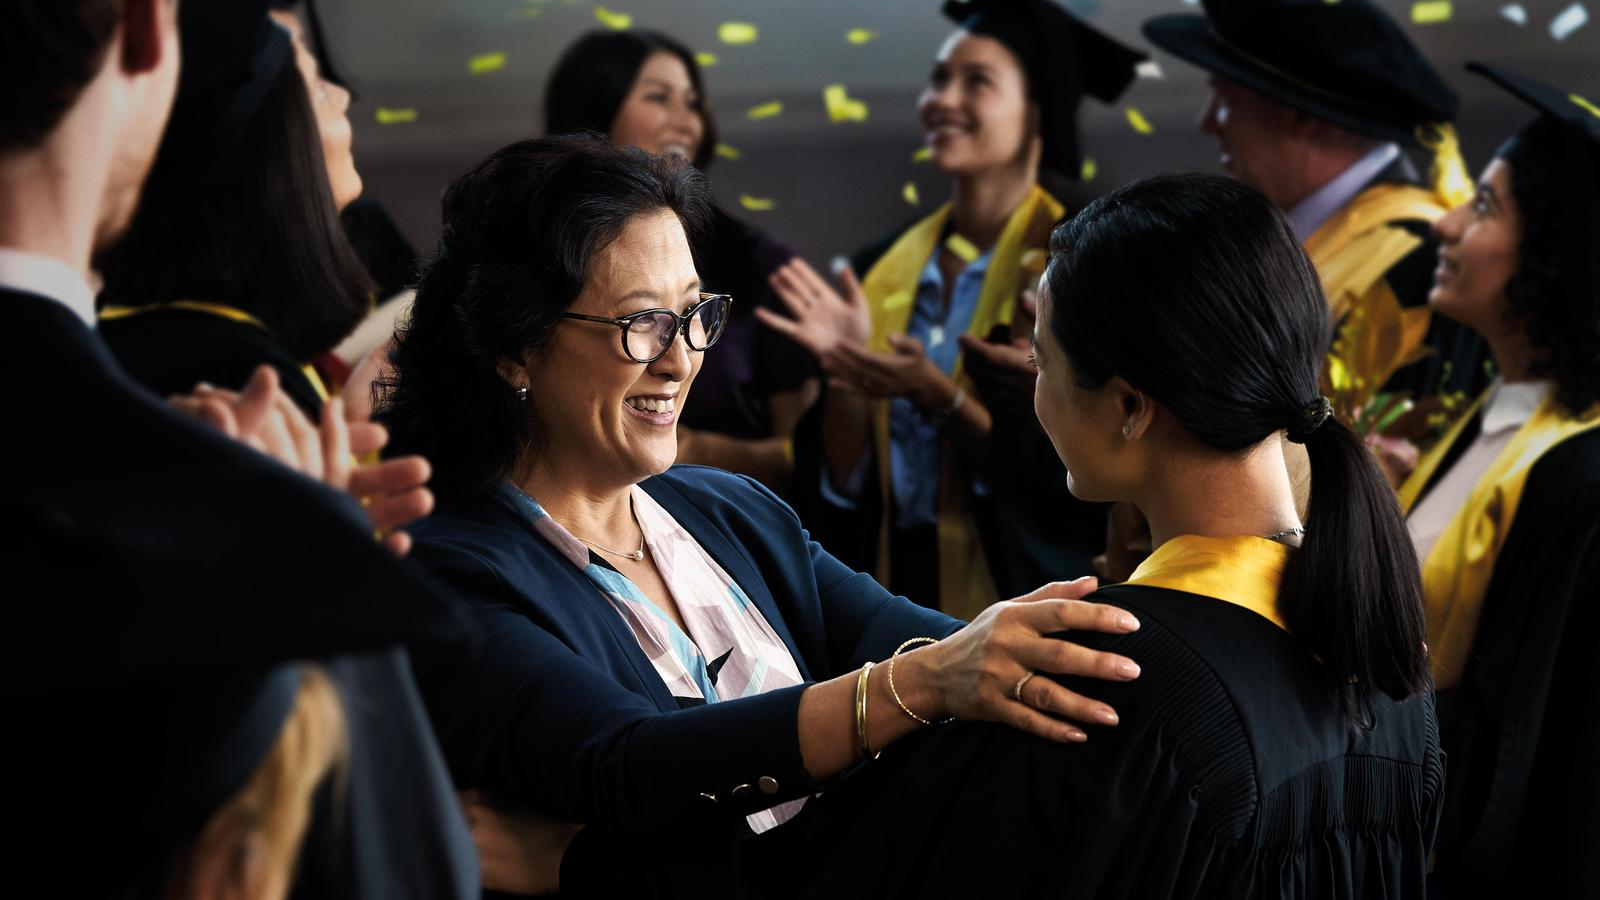 A woman smiles at her daughter during a graduation ceremony